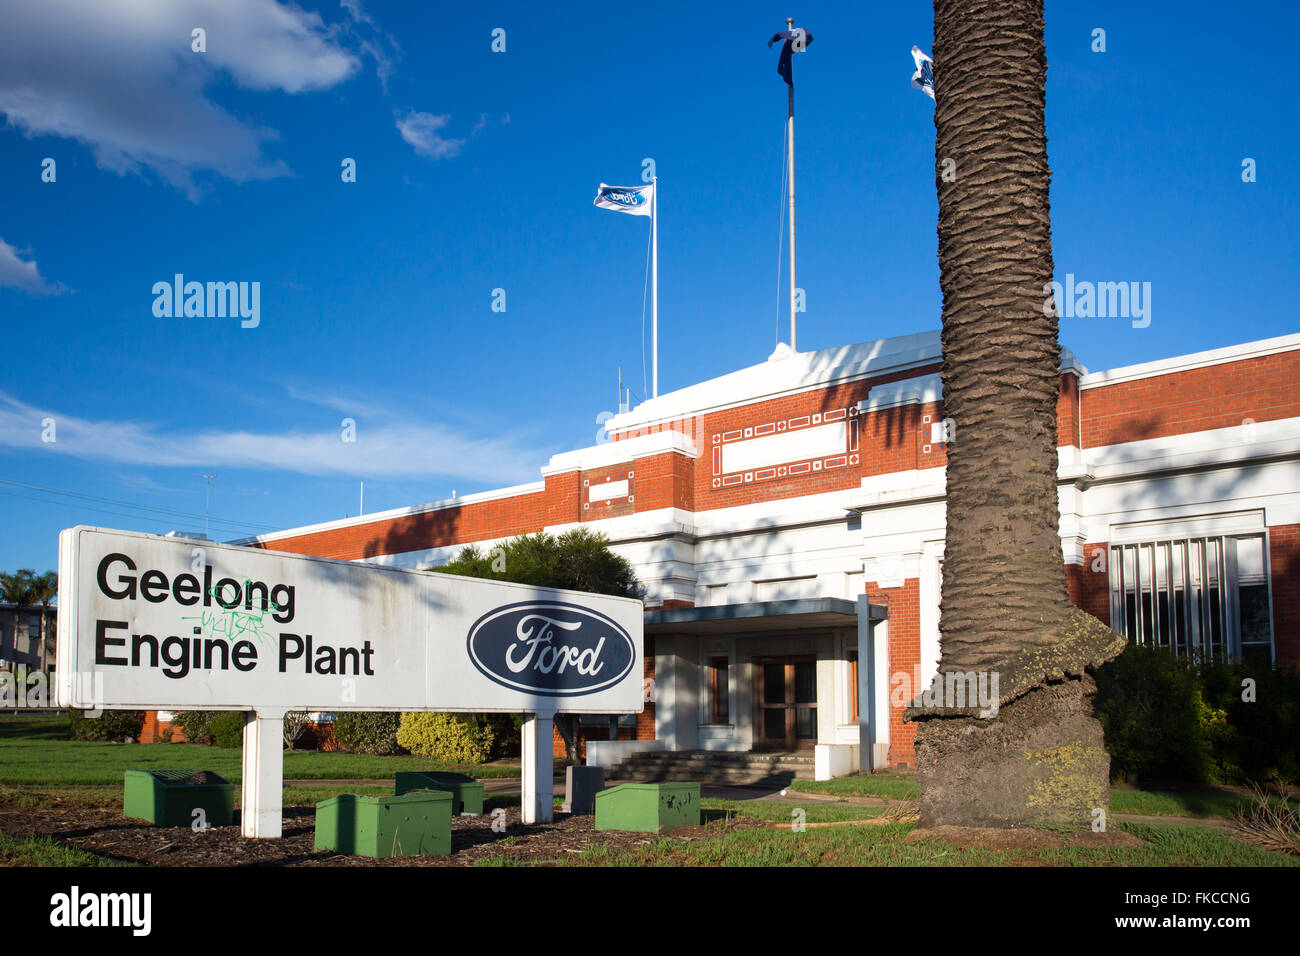 Ford Dealership Detroit Lakes >> Ford Cargo Stock Photos & Ford Cargo Stock Images - Alamy